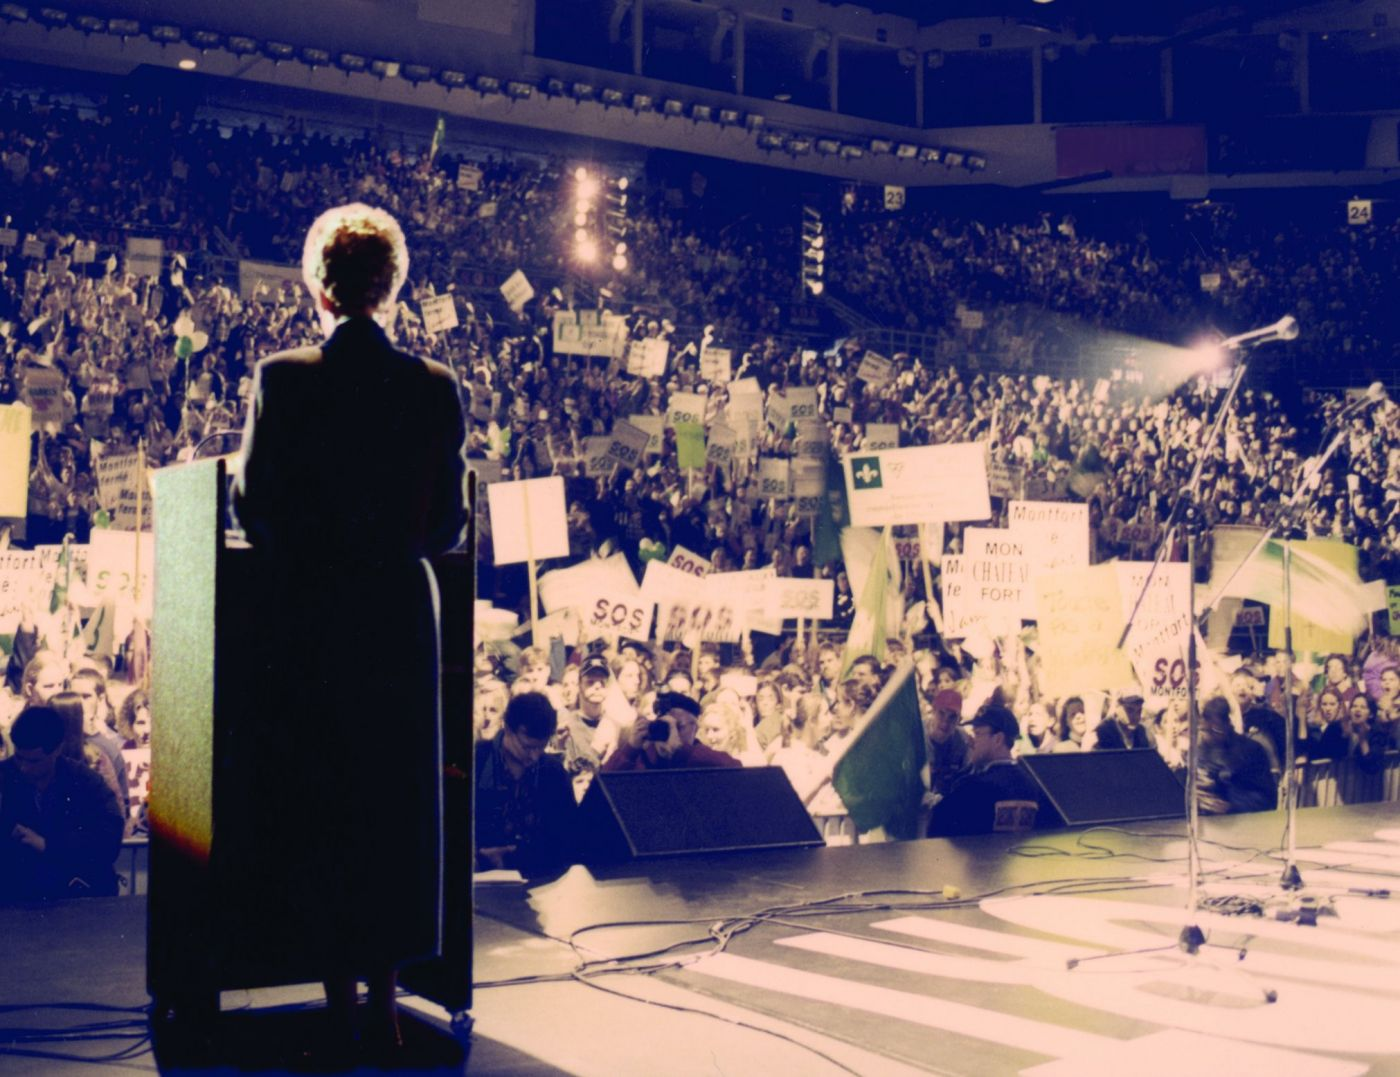 """Colour photograph of a woman seen from behind, standing on a stage, addressing the audience from a podium with a microphone. The stadium is filled with people brandishing signs bearing the slogan """"S.O.S. Montfort."""""""